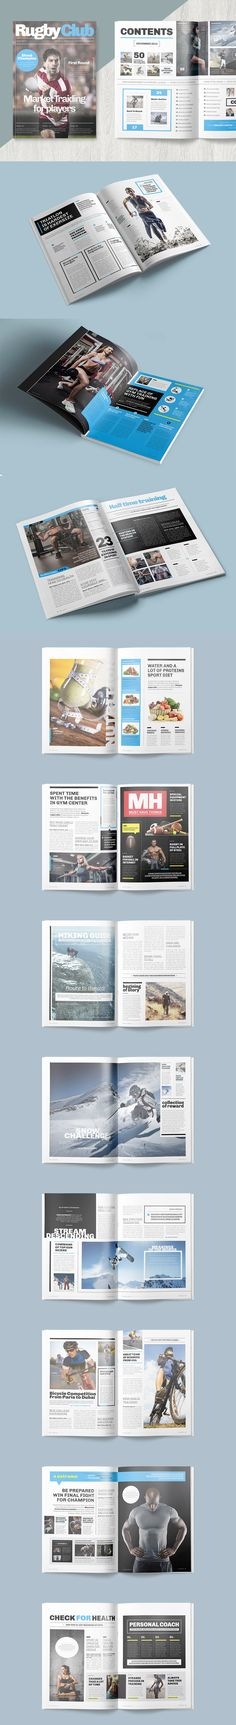 Magazine Template InDesign INDD - 25 Pages